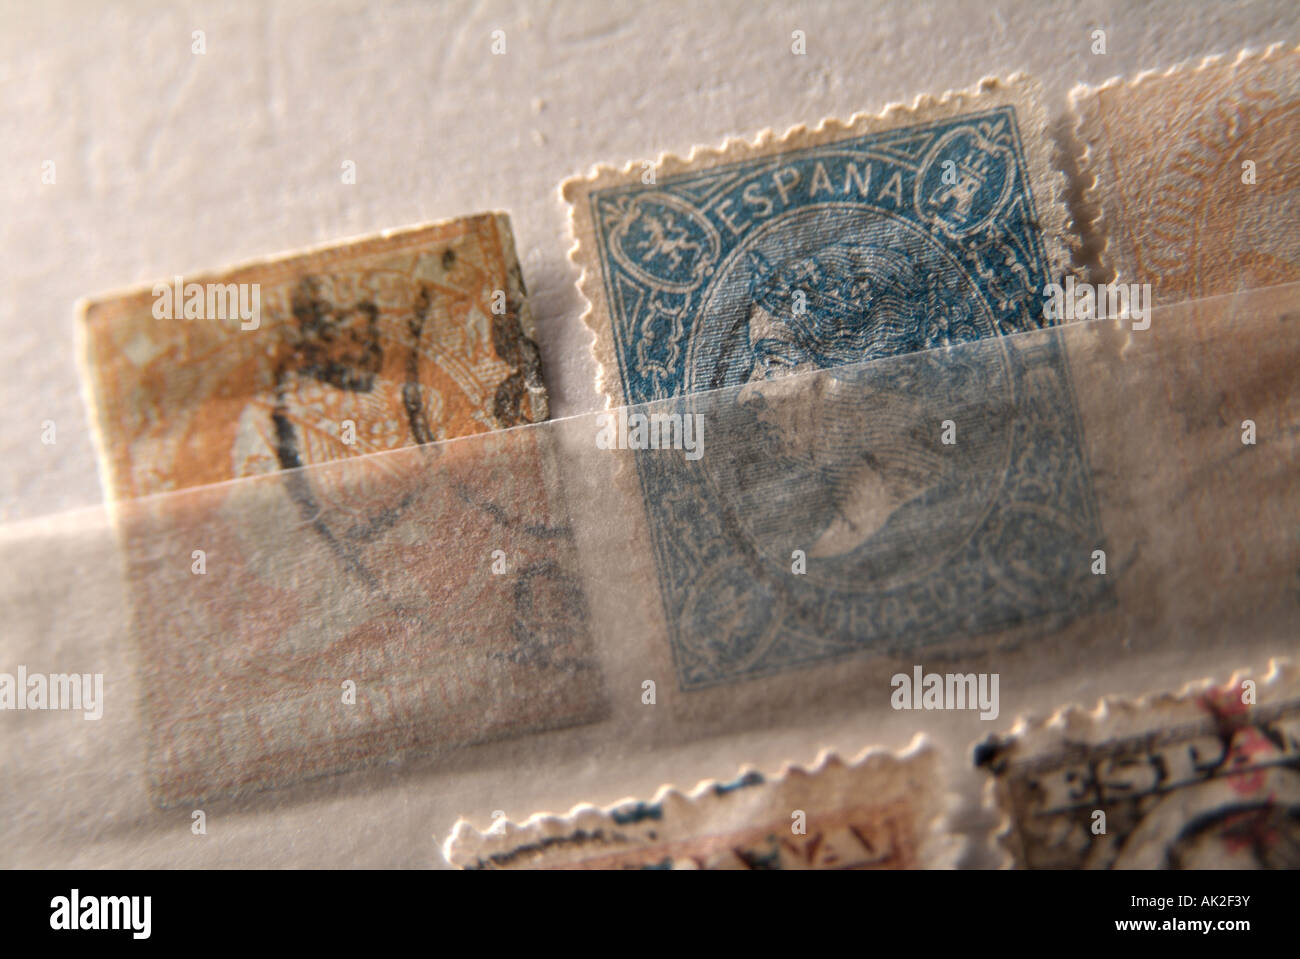 Collection of ancient postage stamps from Spain - Stock Image